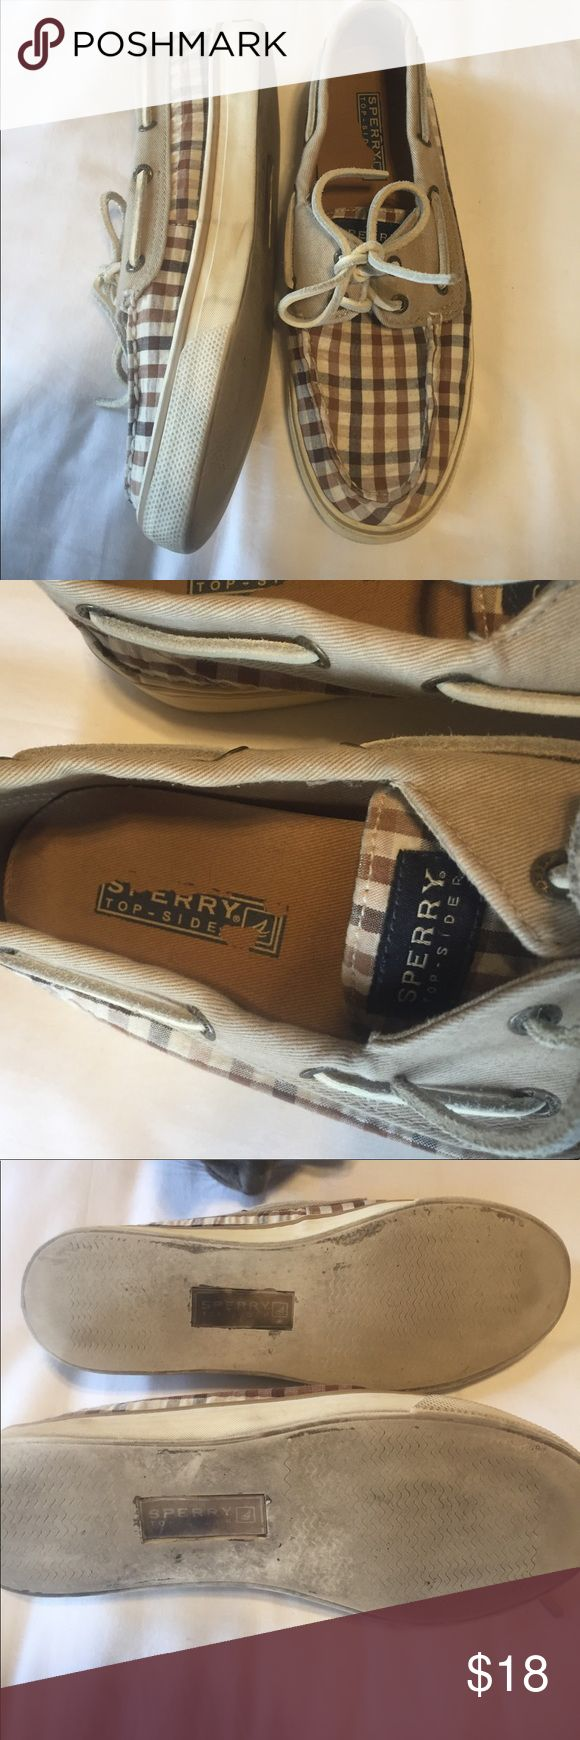 Cute brown plaid Sperry Top Siders. Size 6.5 Sperry Top Slidders. Brown plaid. 6.5. Still in great shape! Light wear but clean and lots of life left! Sperry Top-Sider Shoes Sneakers